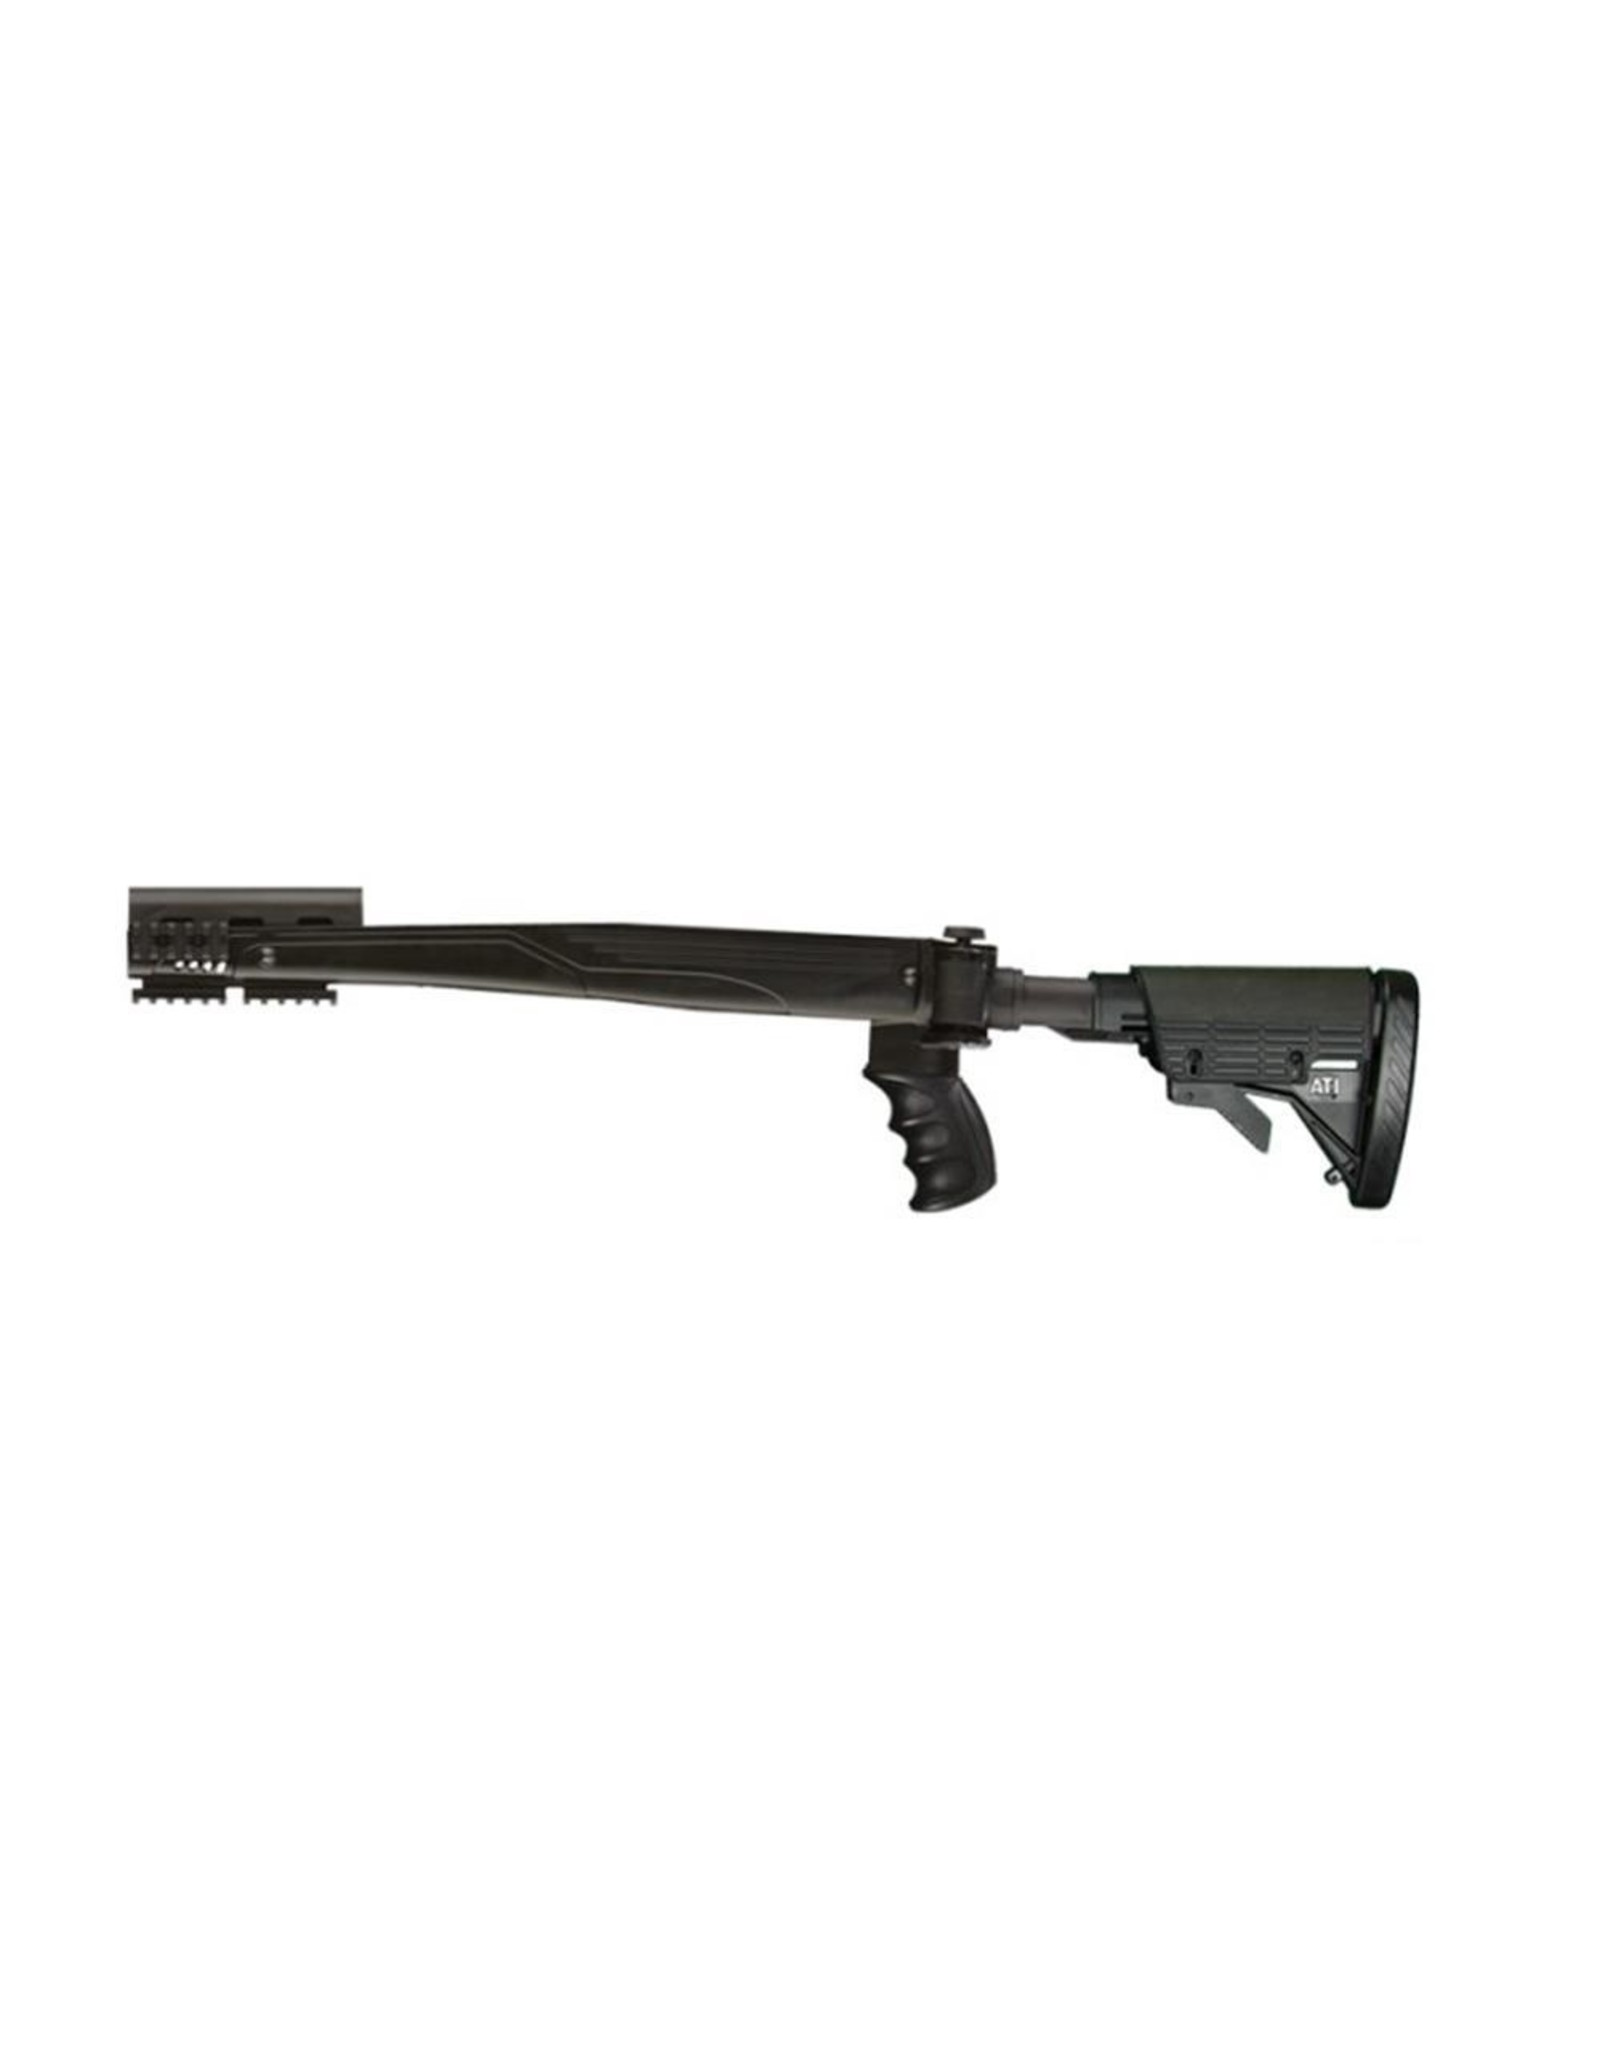 ATI ATI Strikeforce SKS Stock TactLite 6 position adjustable side folding stock w/ scorpion recoil system